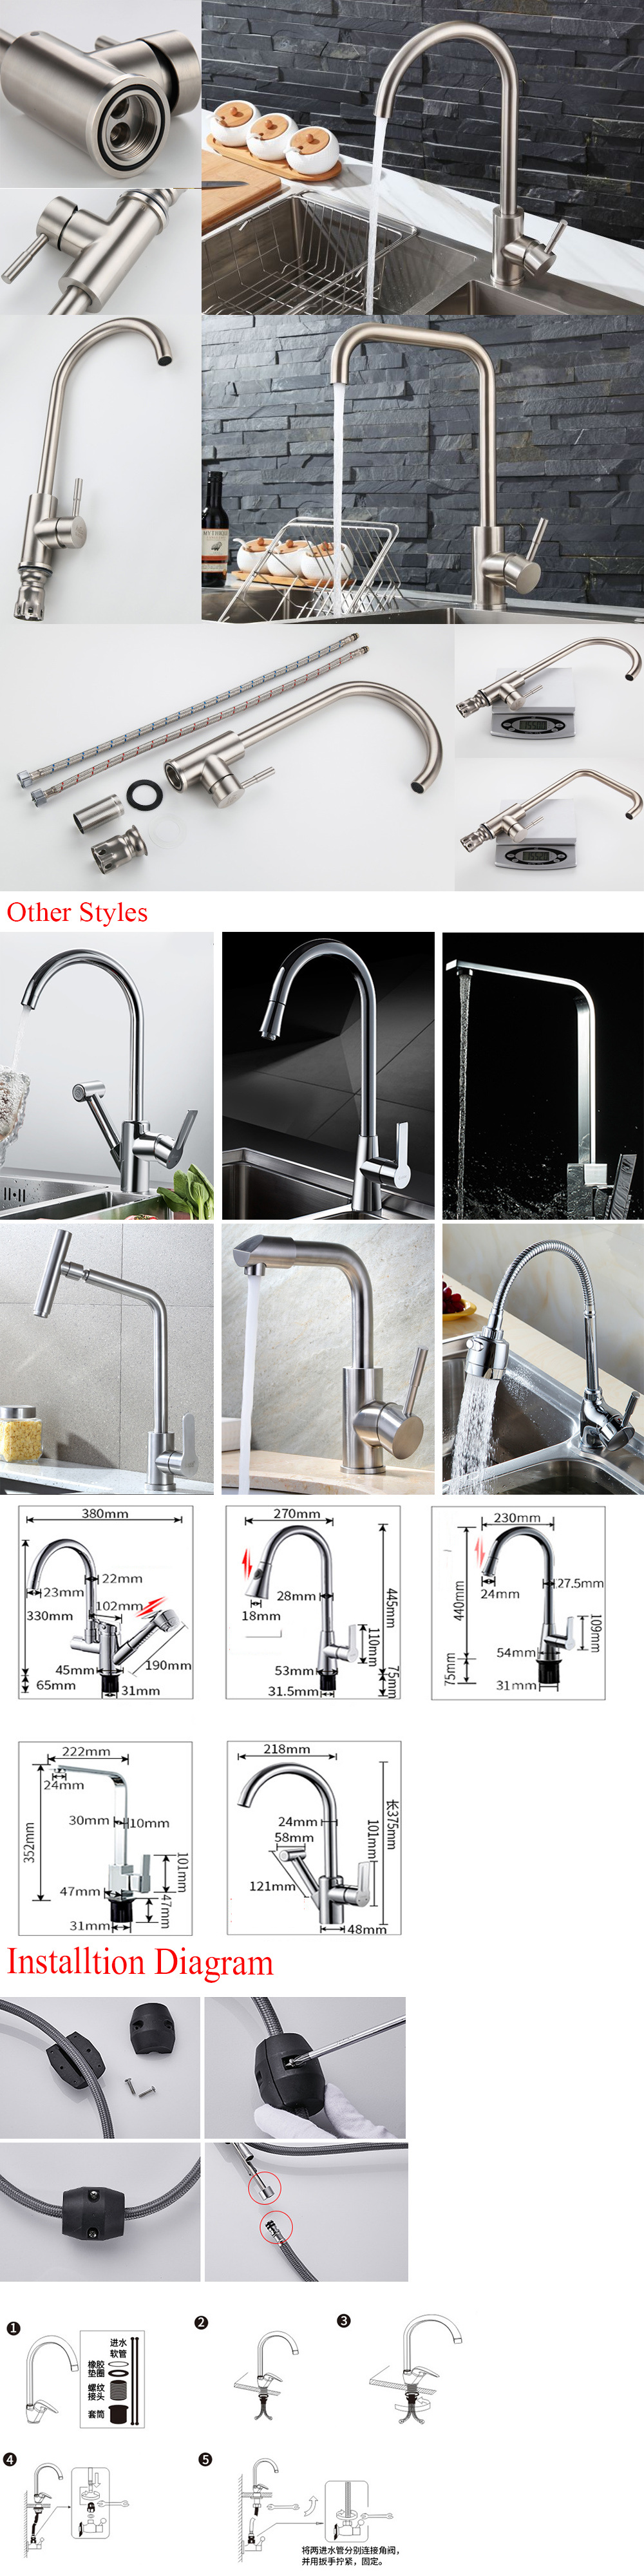 Vintage Energy Saver Plumbing Double Handle Kitchen Sink Tap Mixer Faucet China Faucet Tap Single Handle Made In China Com